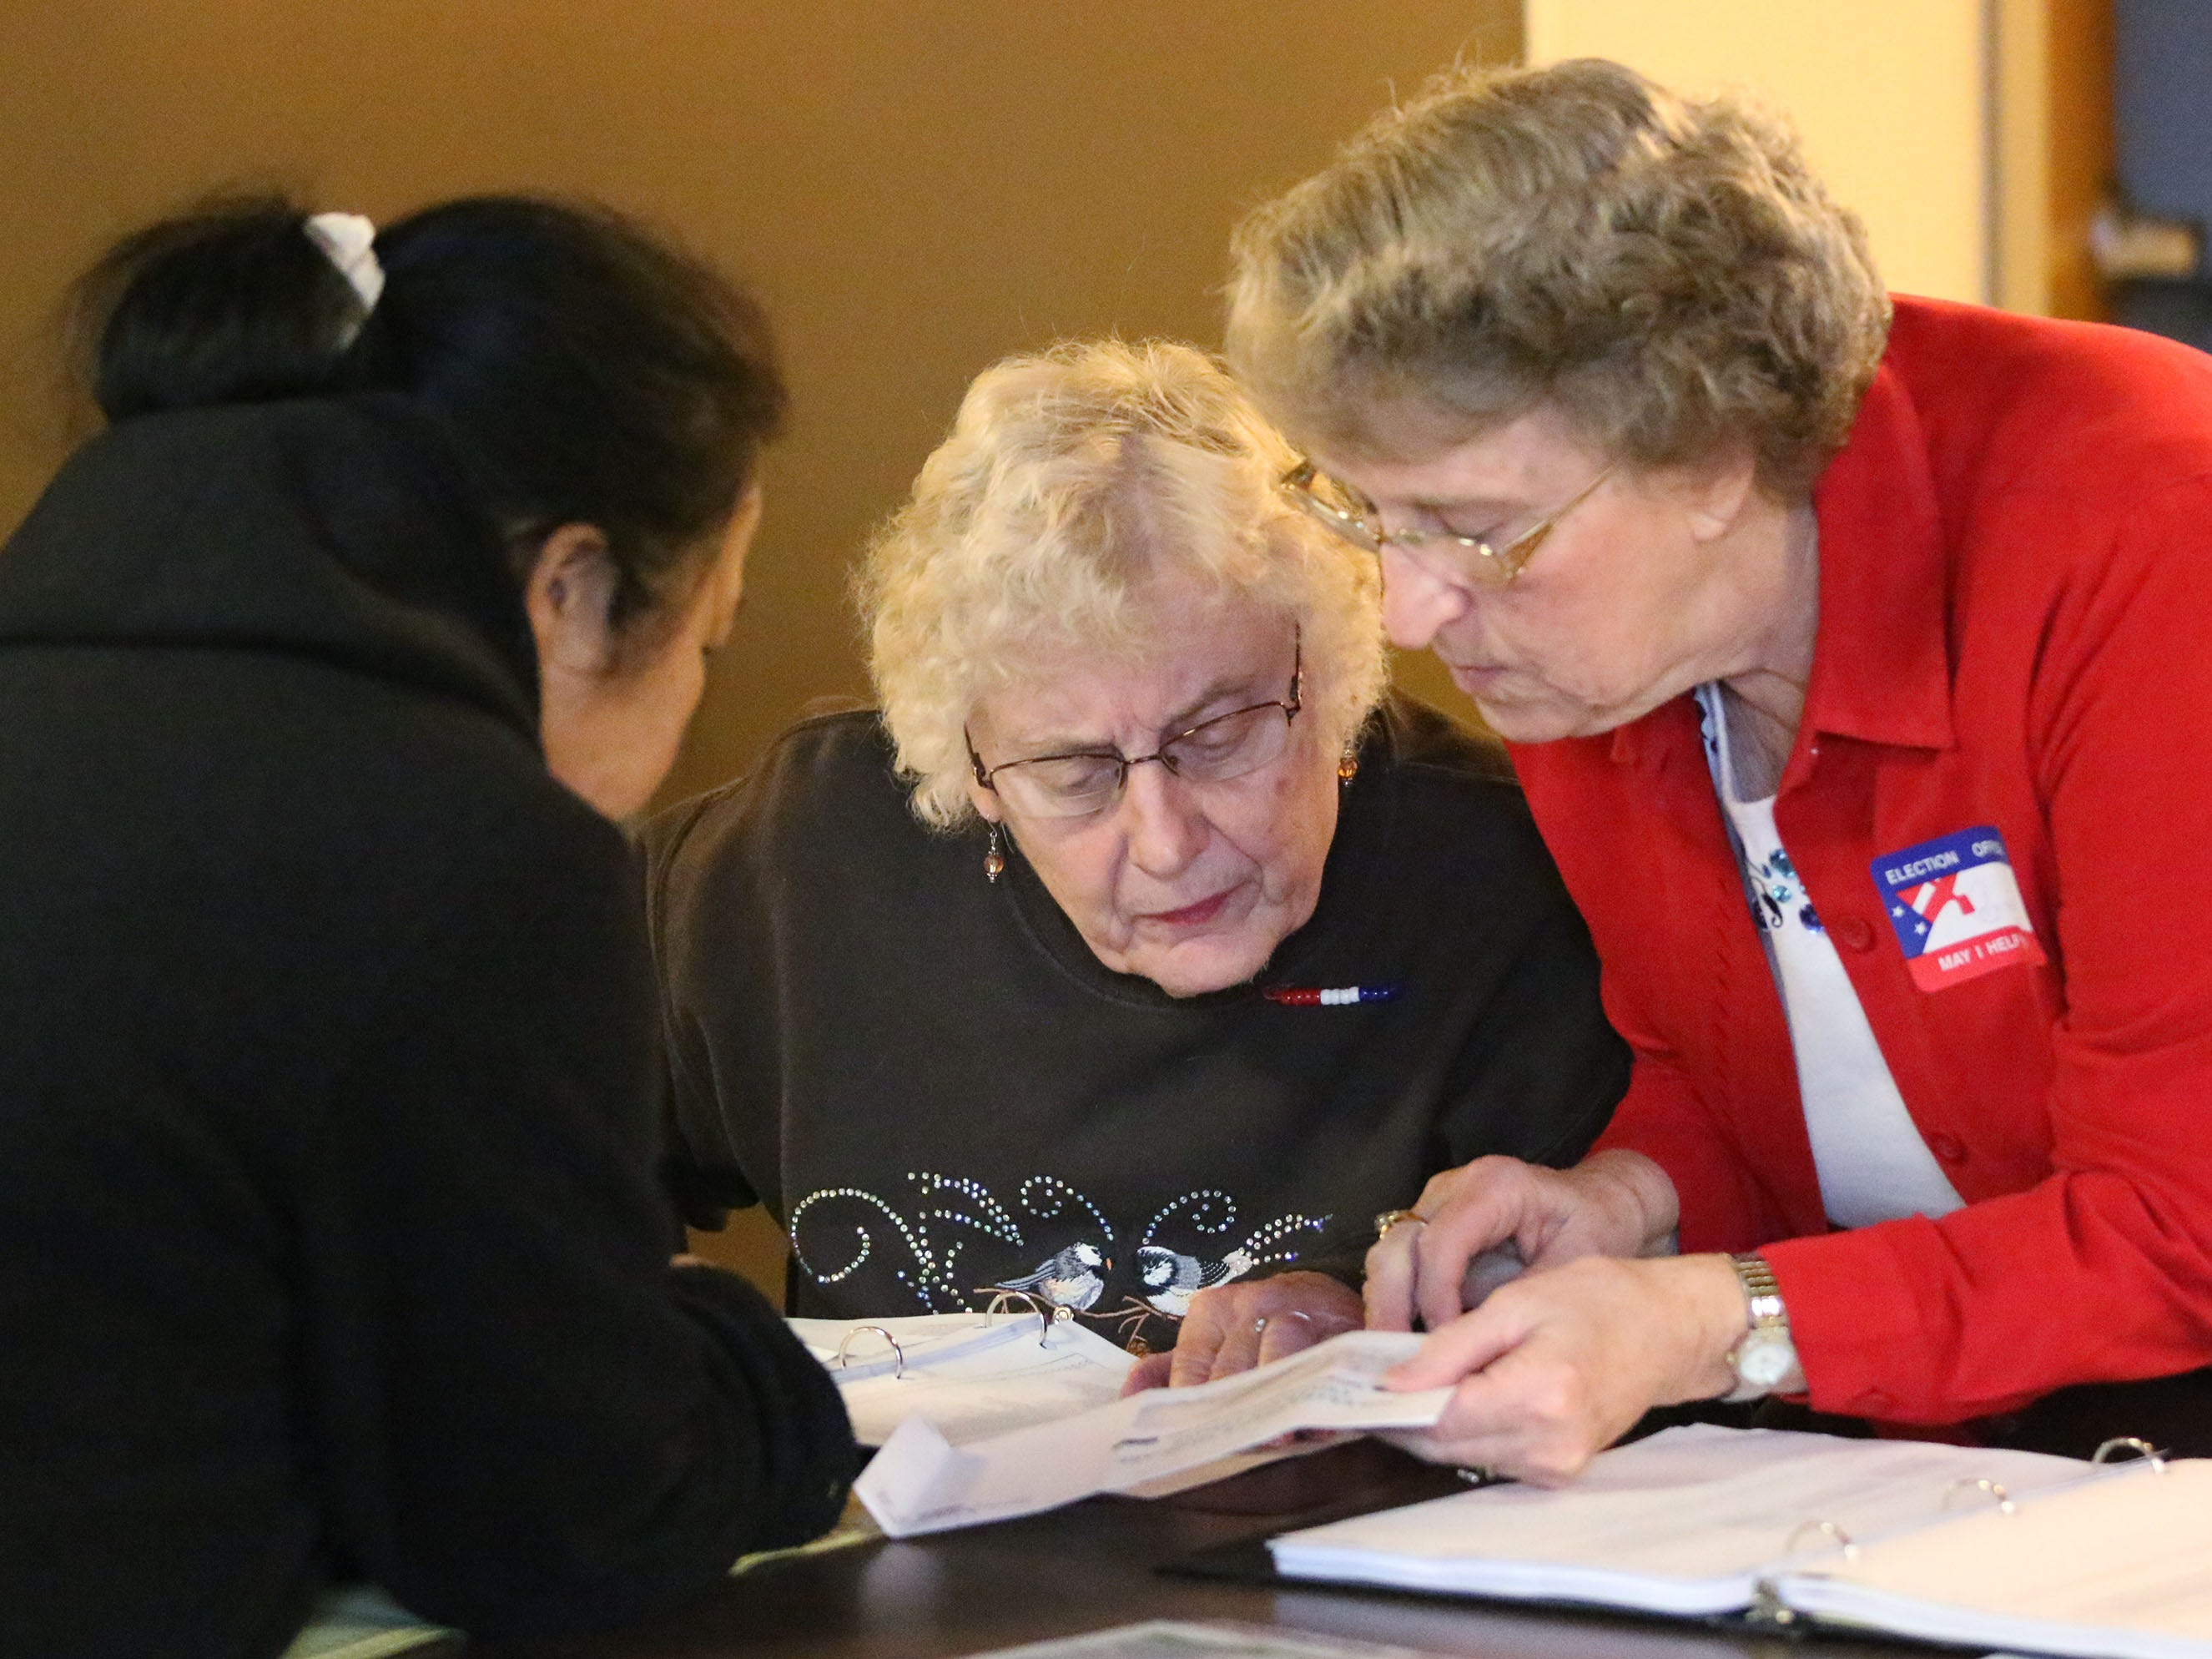 Bao Vue, of Sheboygan, left, gets help on voting from poll workers Cynthia Kuester, left, and Connie Knop, at Bethany Reformed Church, Tuesday, November 6, 2018, in Sheboygan, Wis.